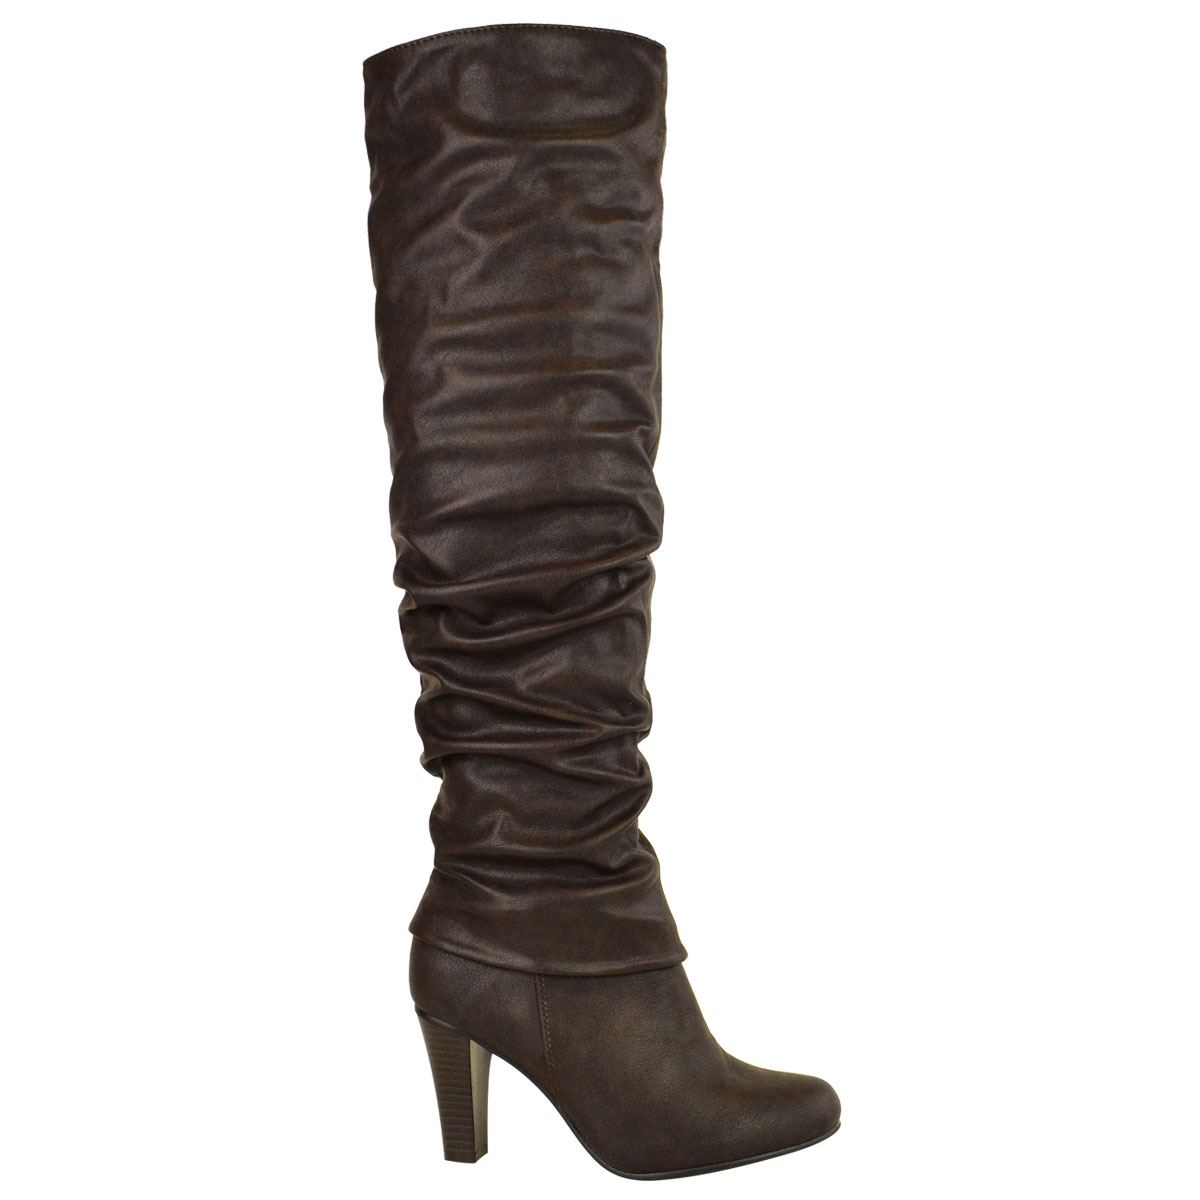 Womens-Ladies-Knee-Calf-High-Boots-Block-Heels-Stretchy-Thigh-Shoes-Grip-Size thumbnail 26